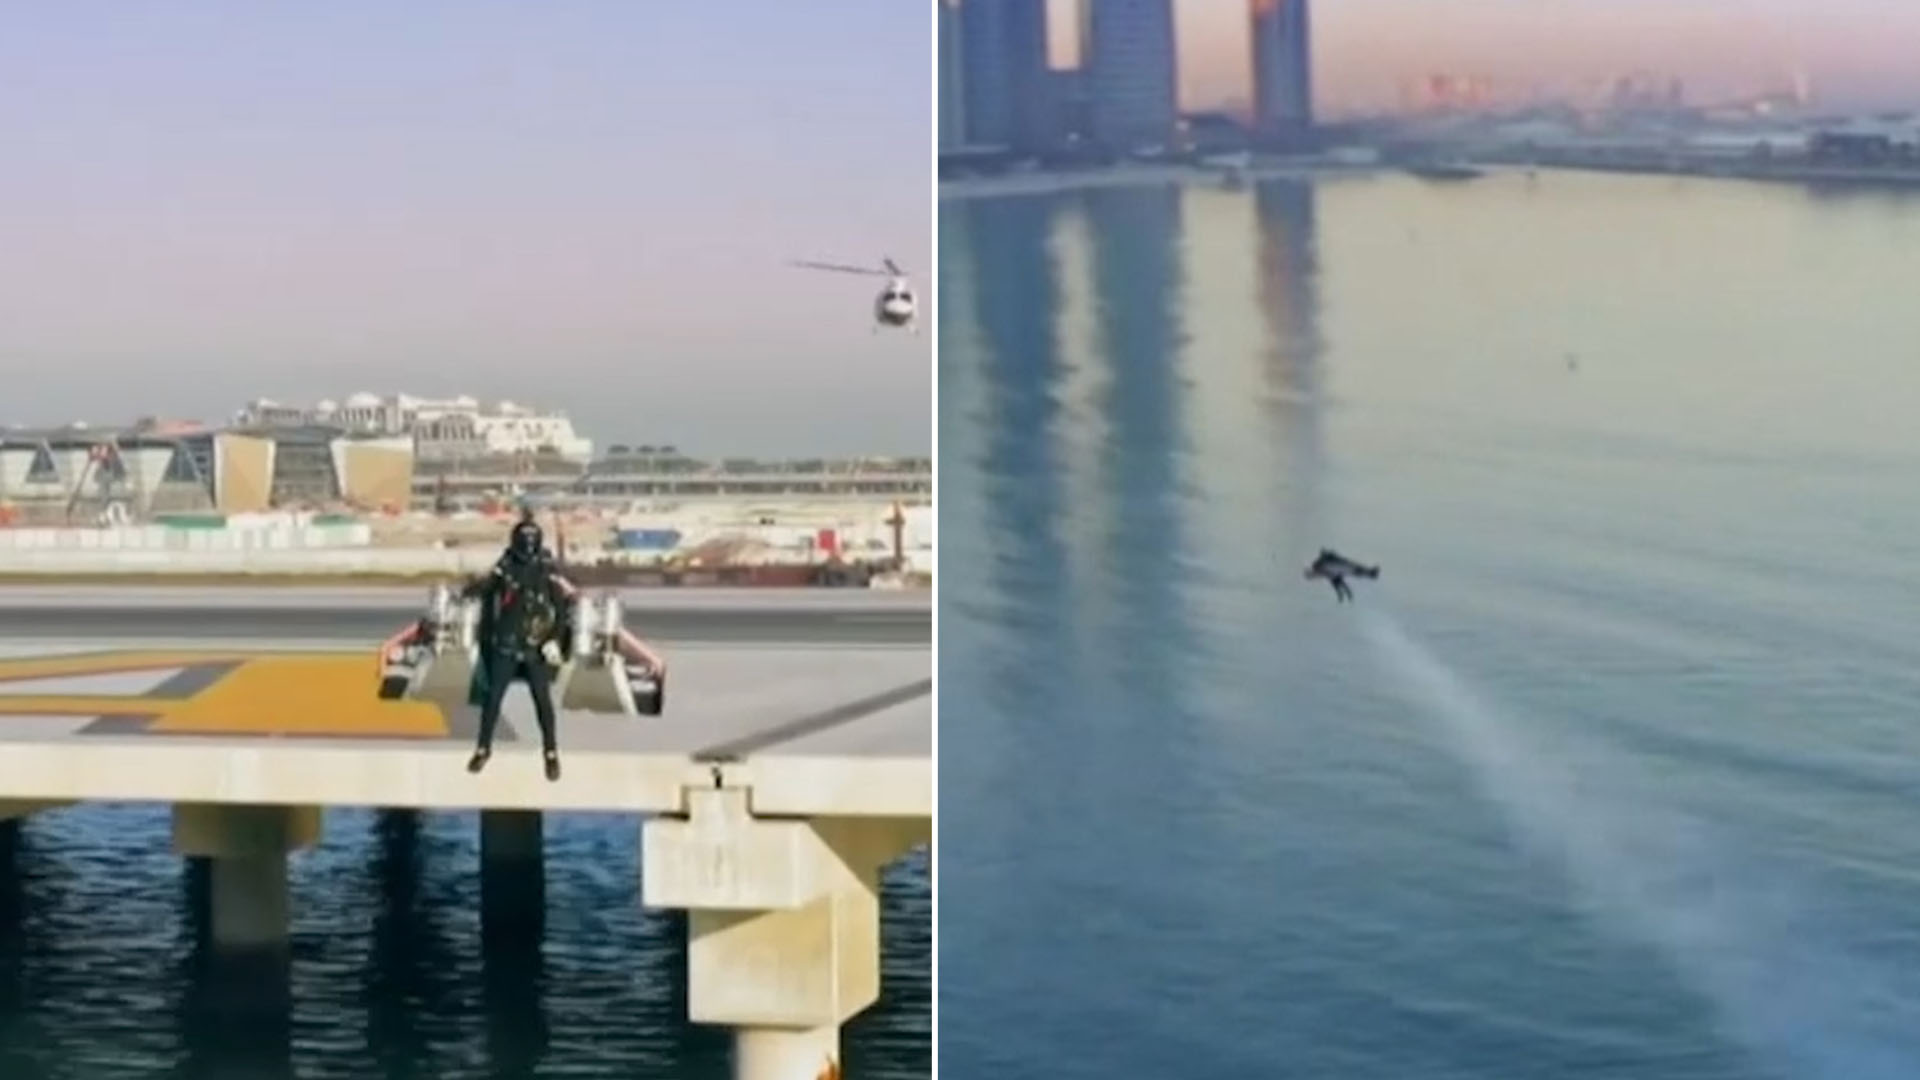 Jetpack pilot flies 1800 metres above Dubai